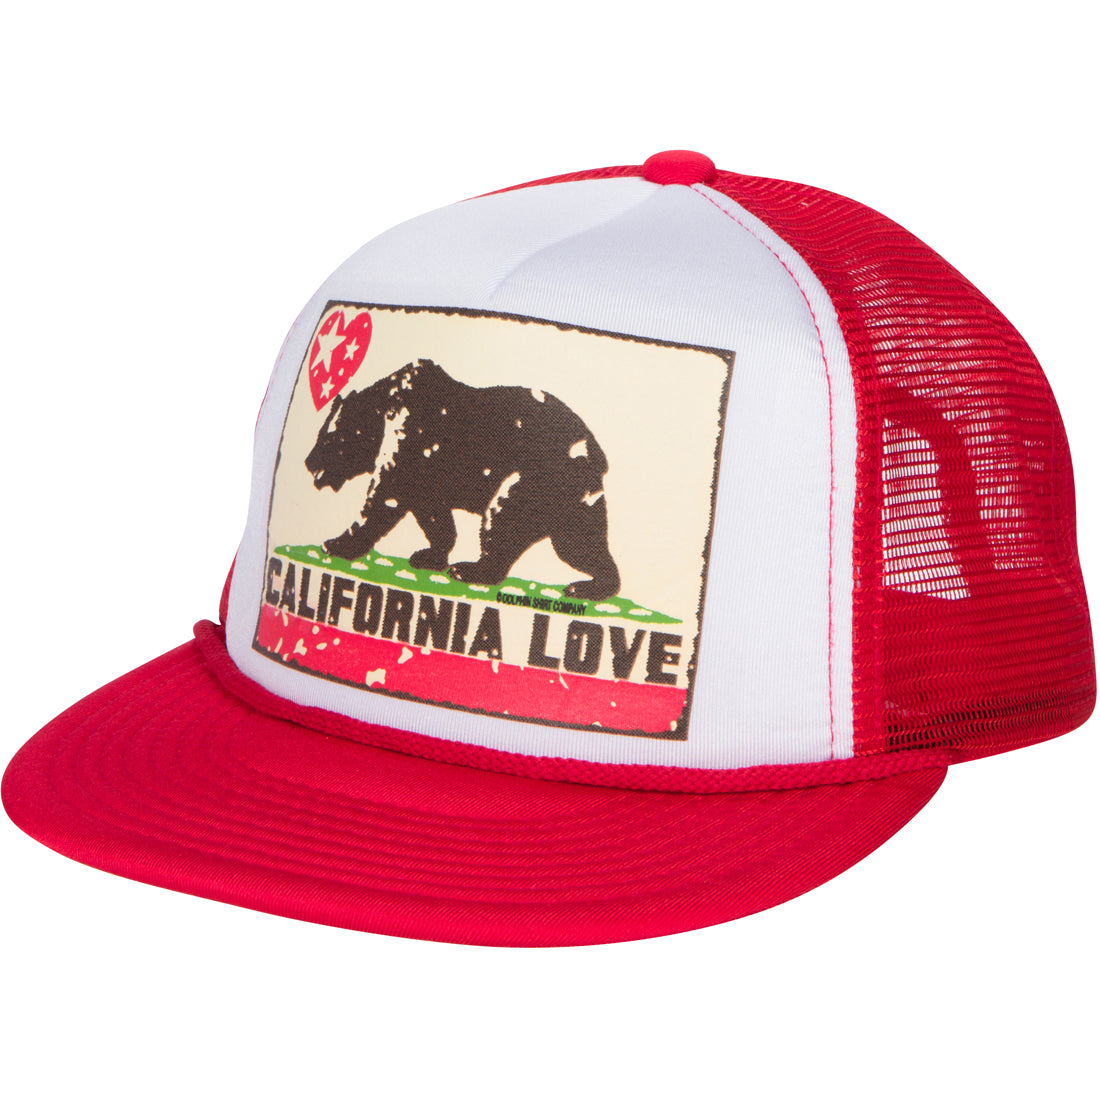 California Love Flag Flat Bill Snapback Mesh Truckers Cap